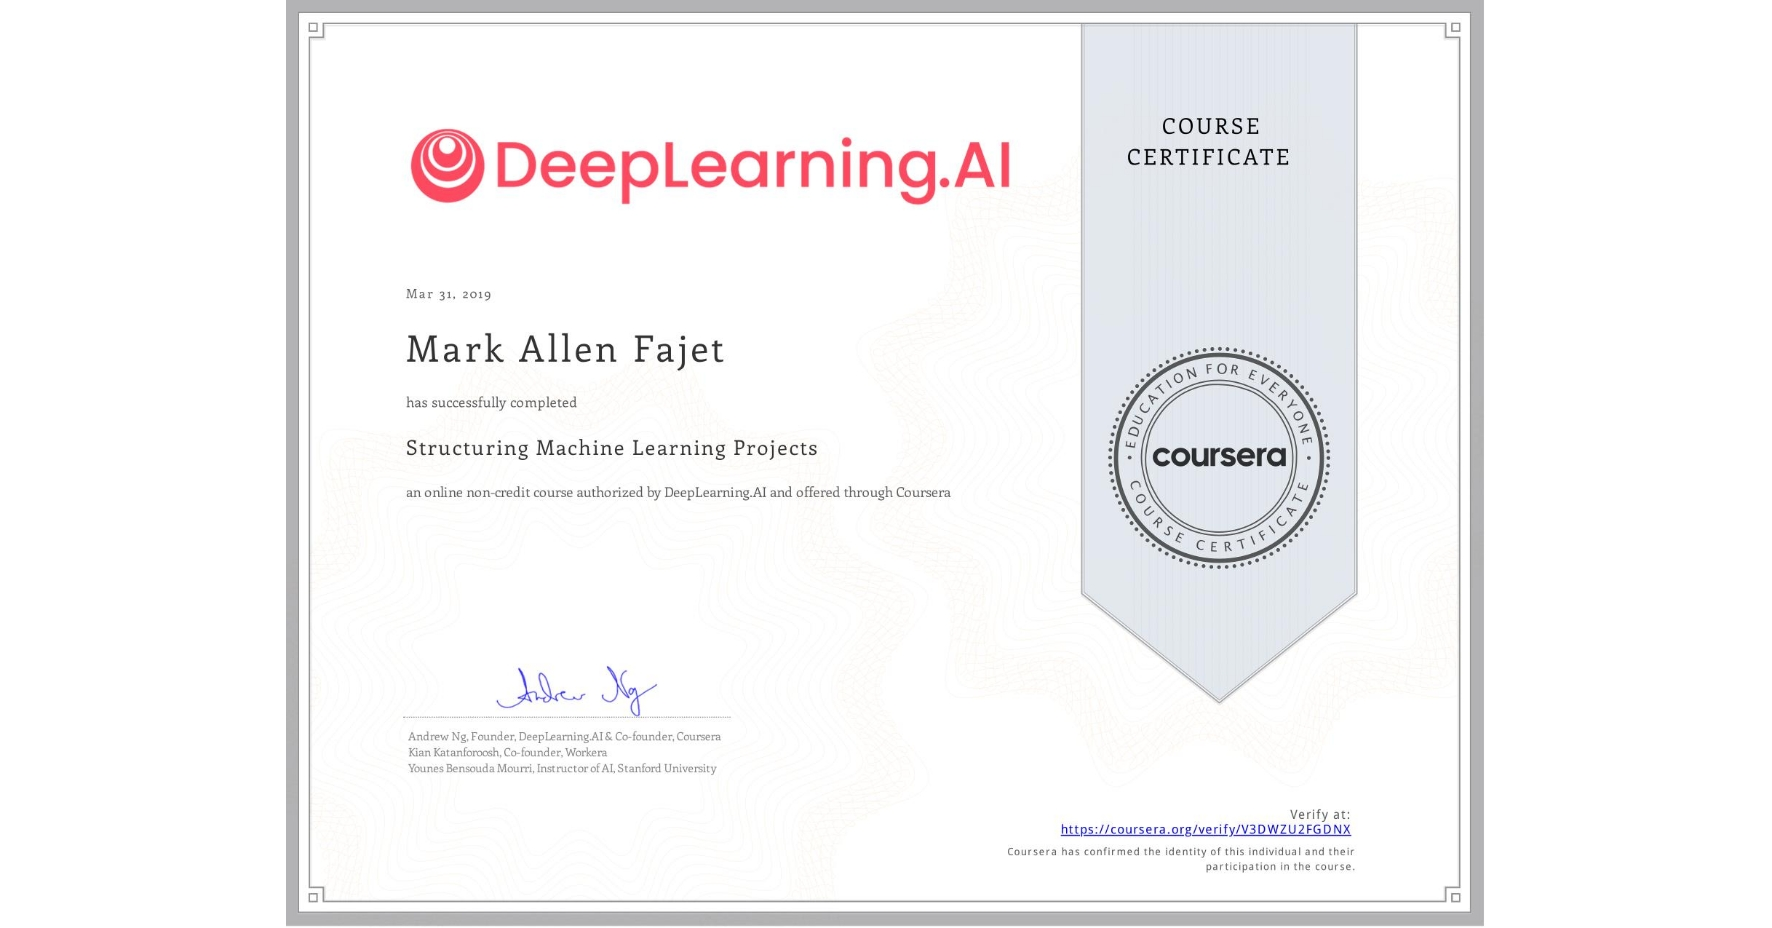 View certificate for Mark Allen Fajet, Structuring Machine Learning Projects, an online non-credit course authorized by DeepLearning.AI and offered through Coursera